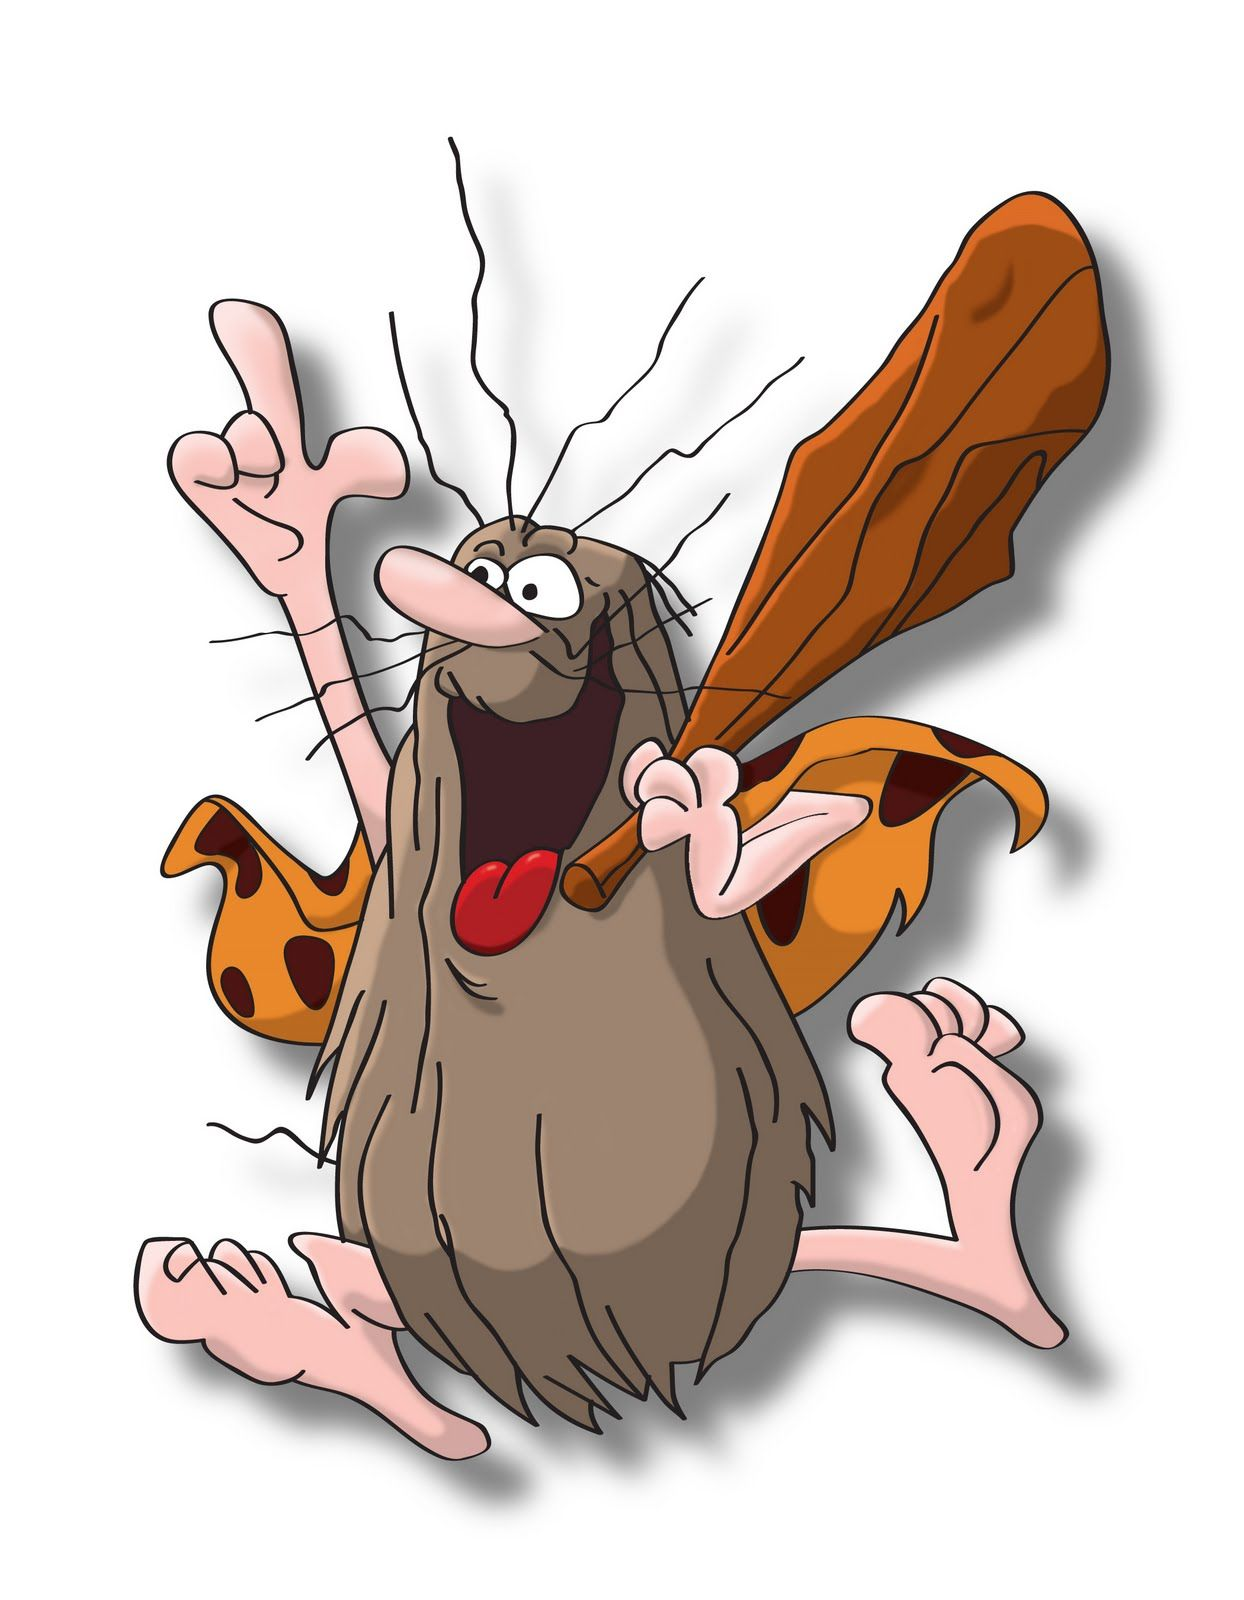 Captain Caveman Clipart at GetDrawings.com.